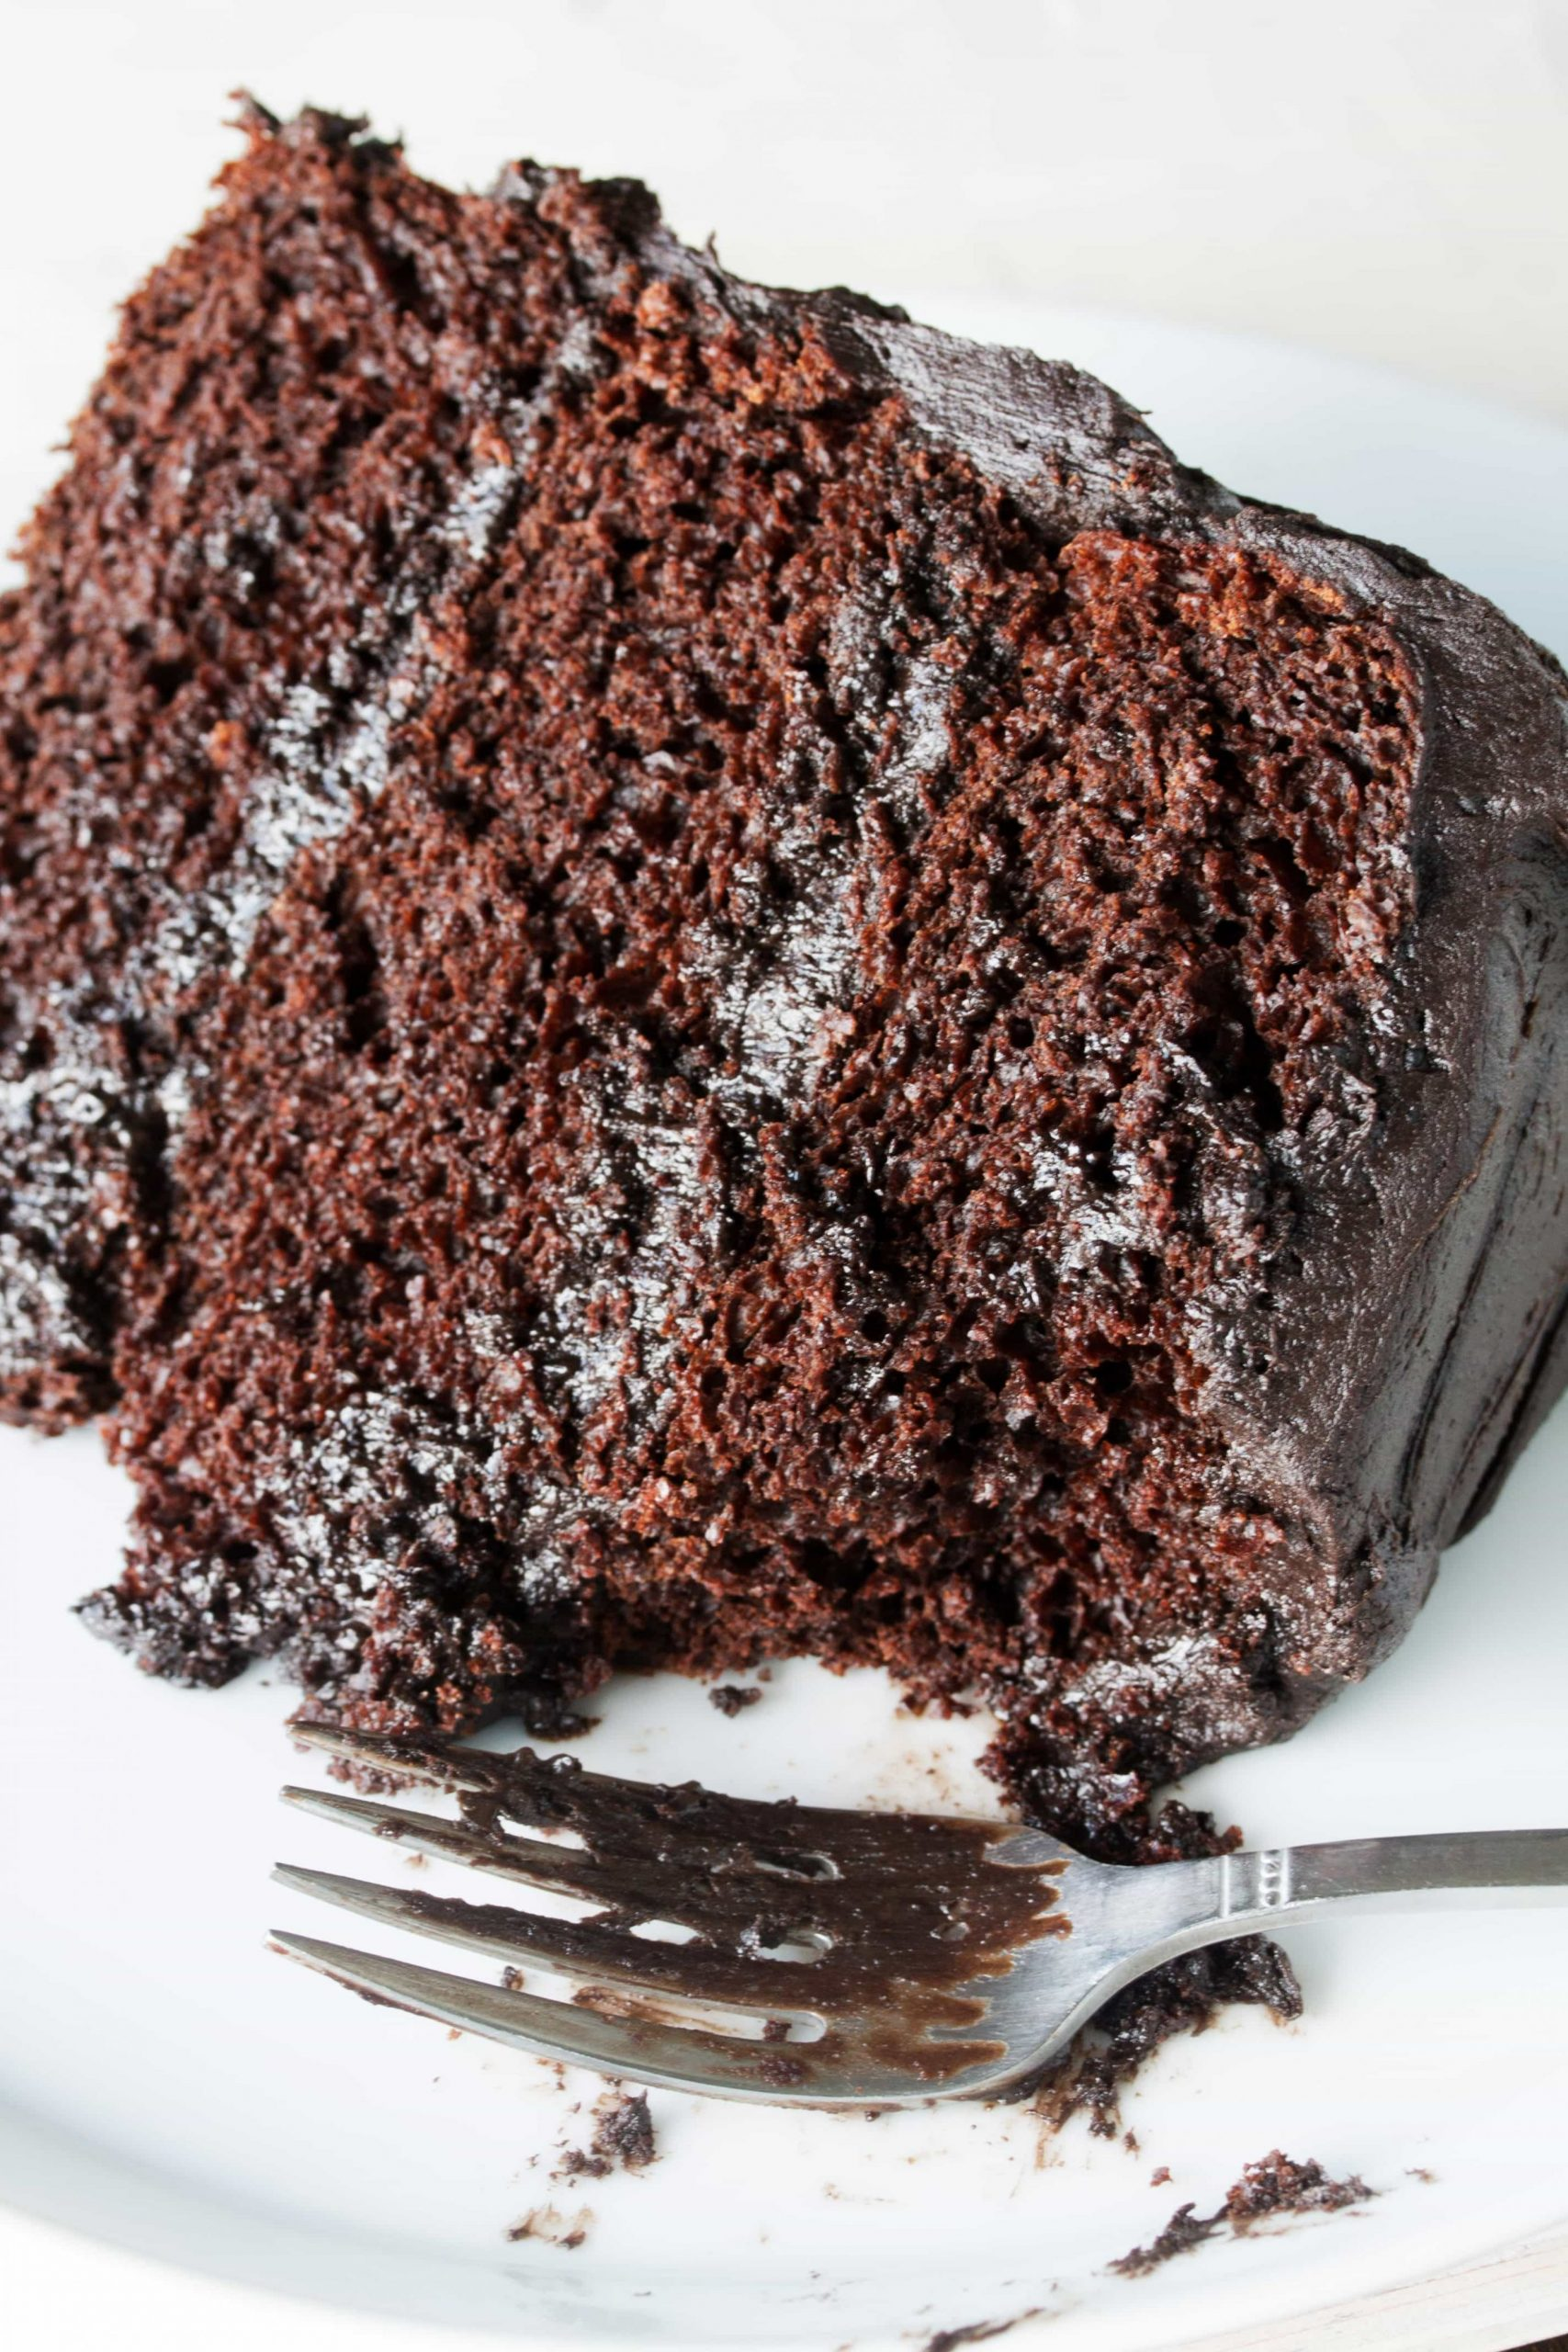 Most Amazing Chocolate Cake - Dessert Recipes Using Chocolate Cake Mix